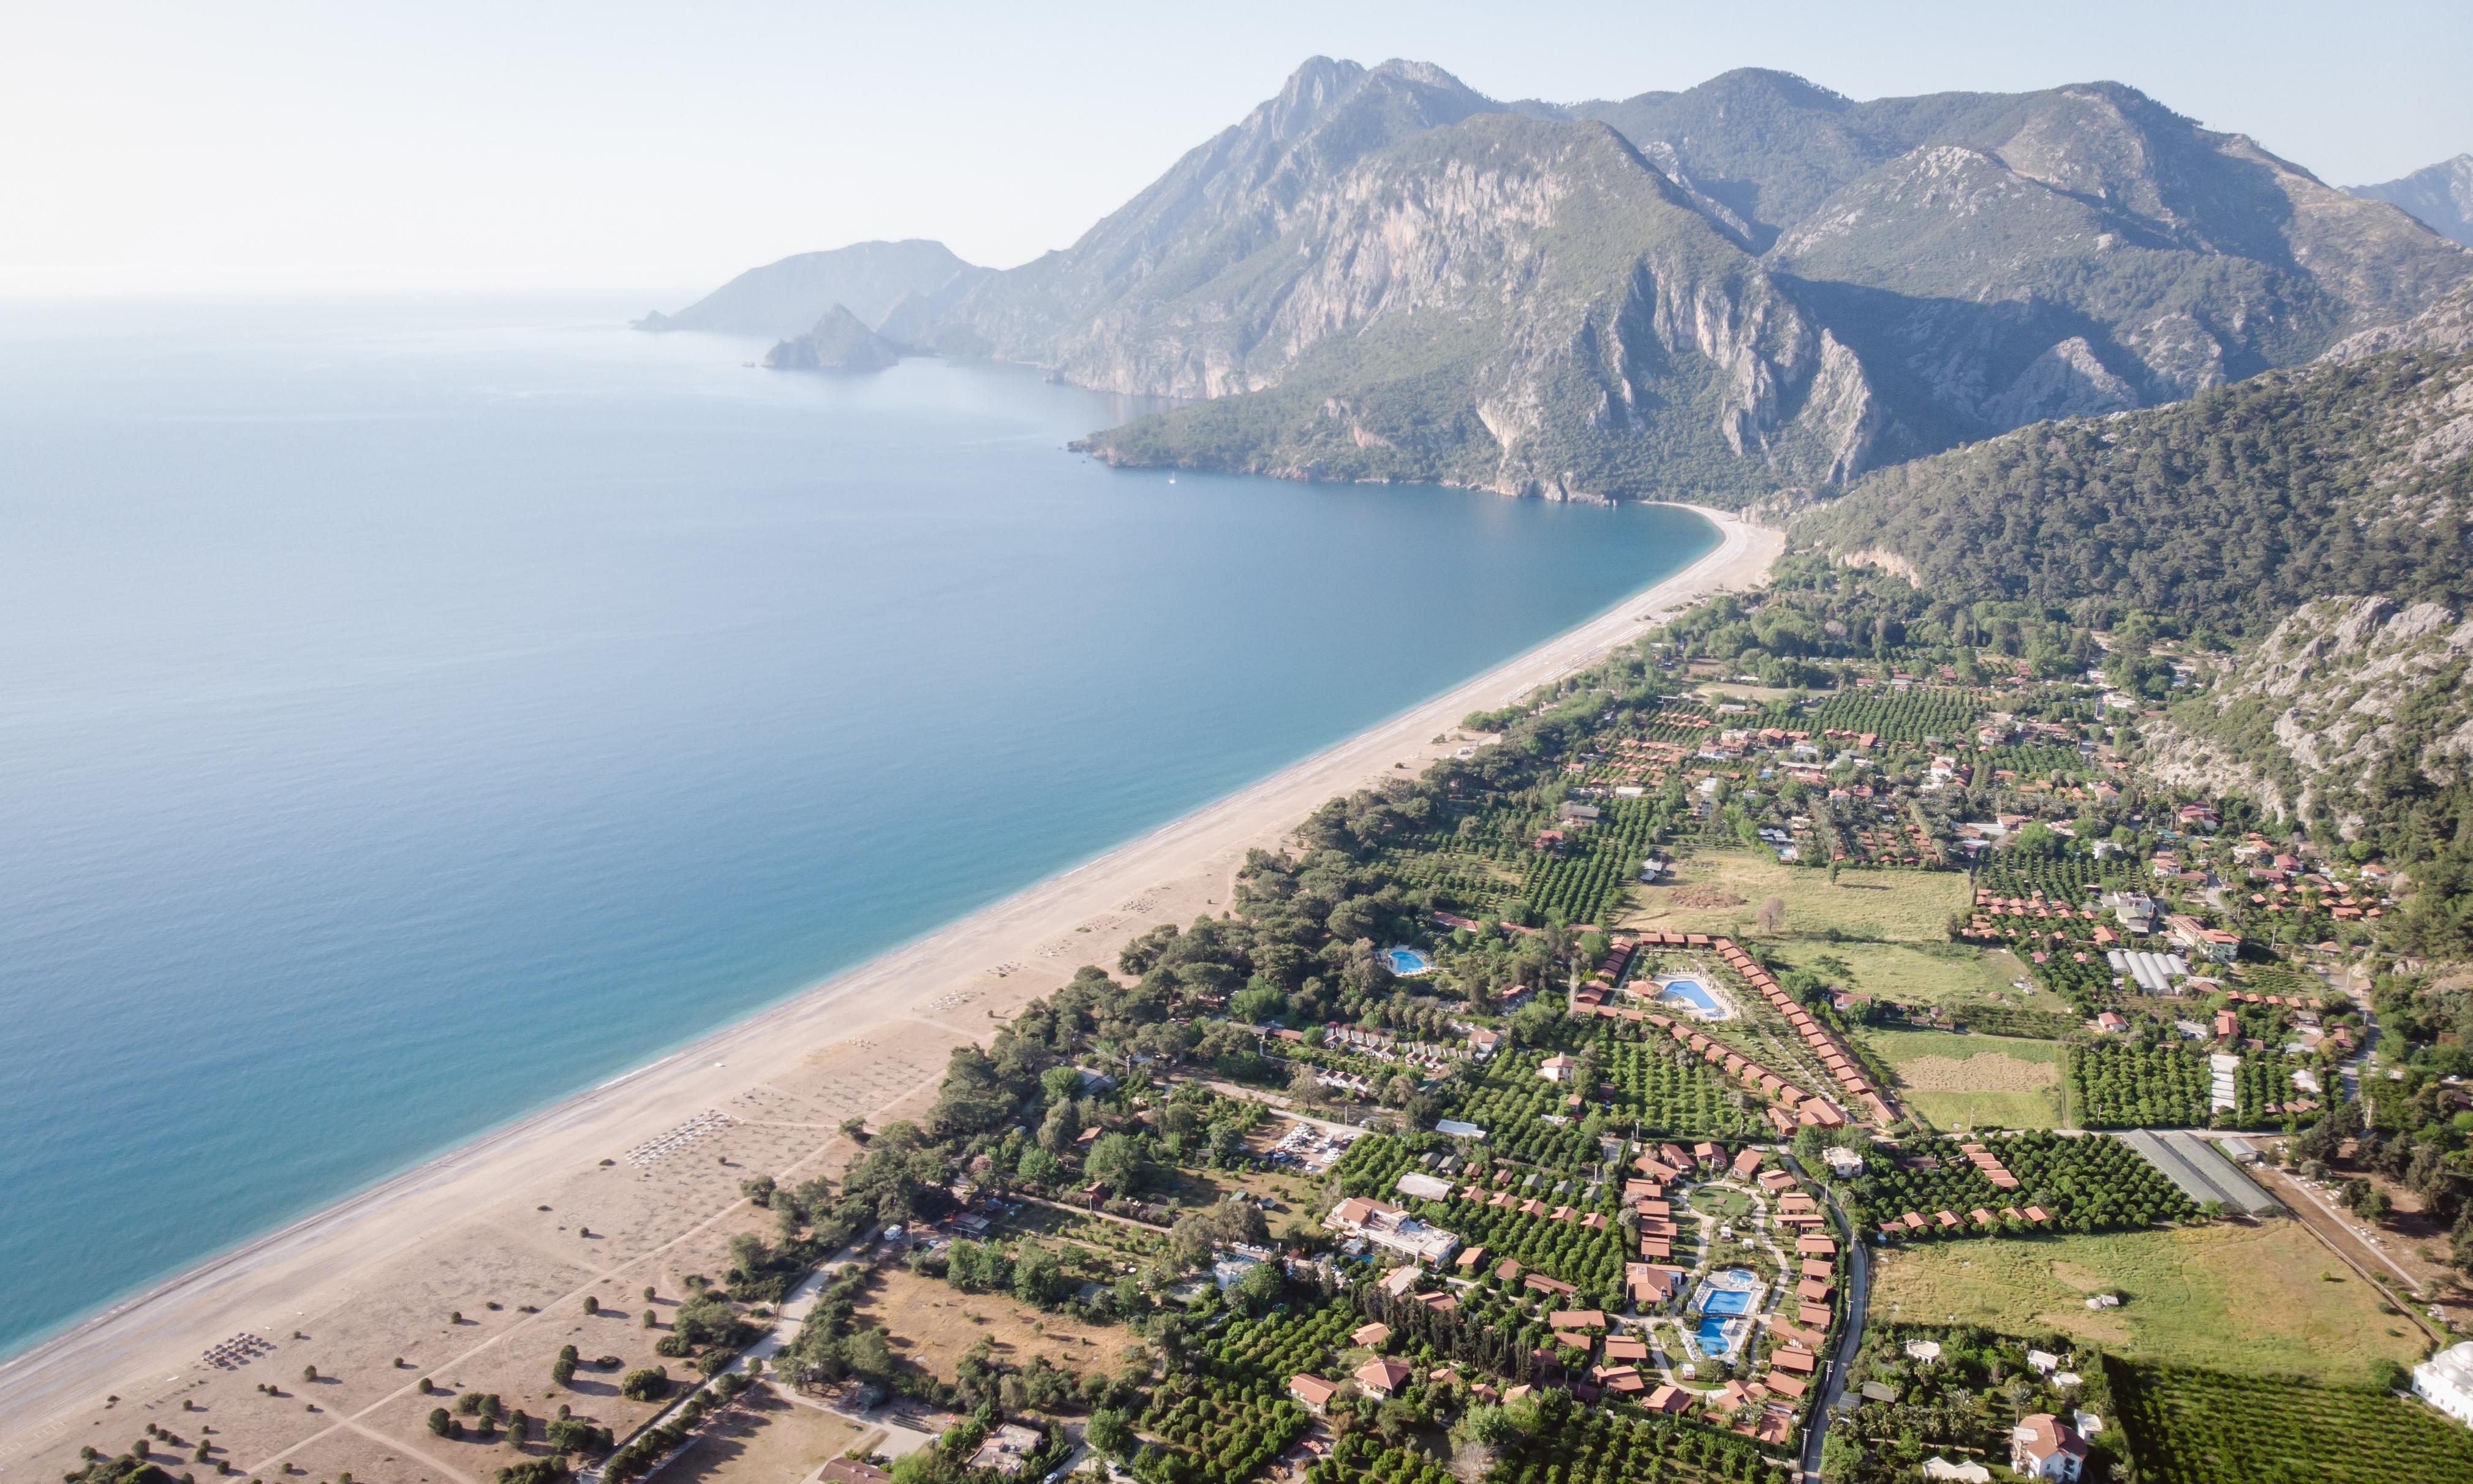 An old flame: a return trip to the beaches and mountains of Çıralı, Turkey